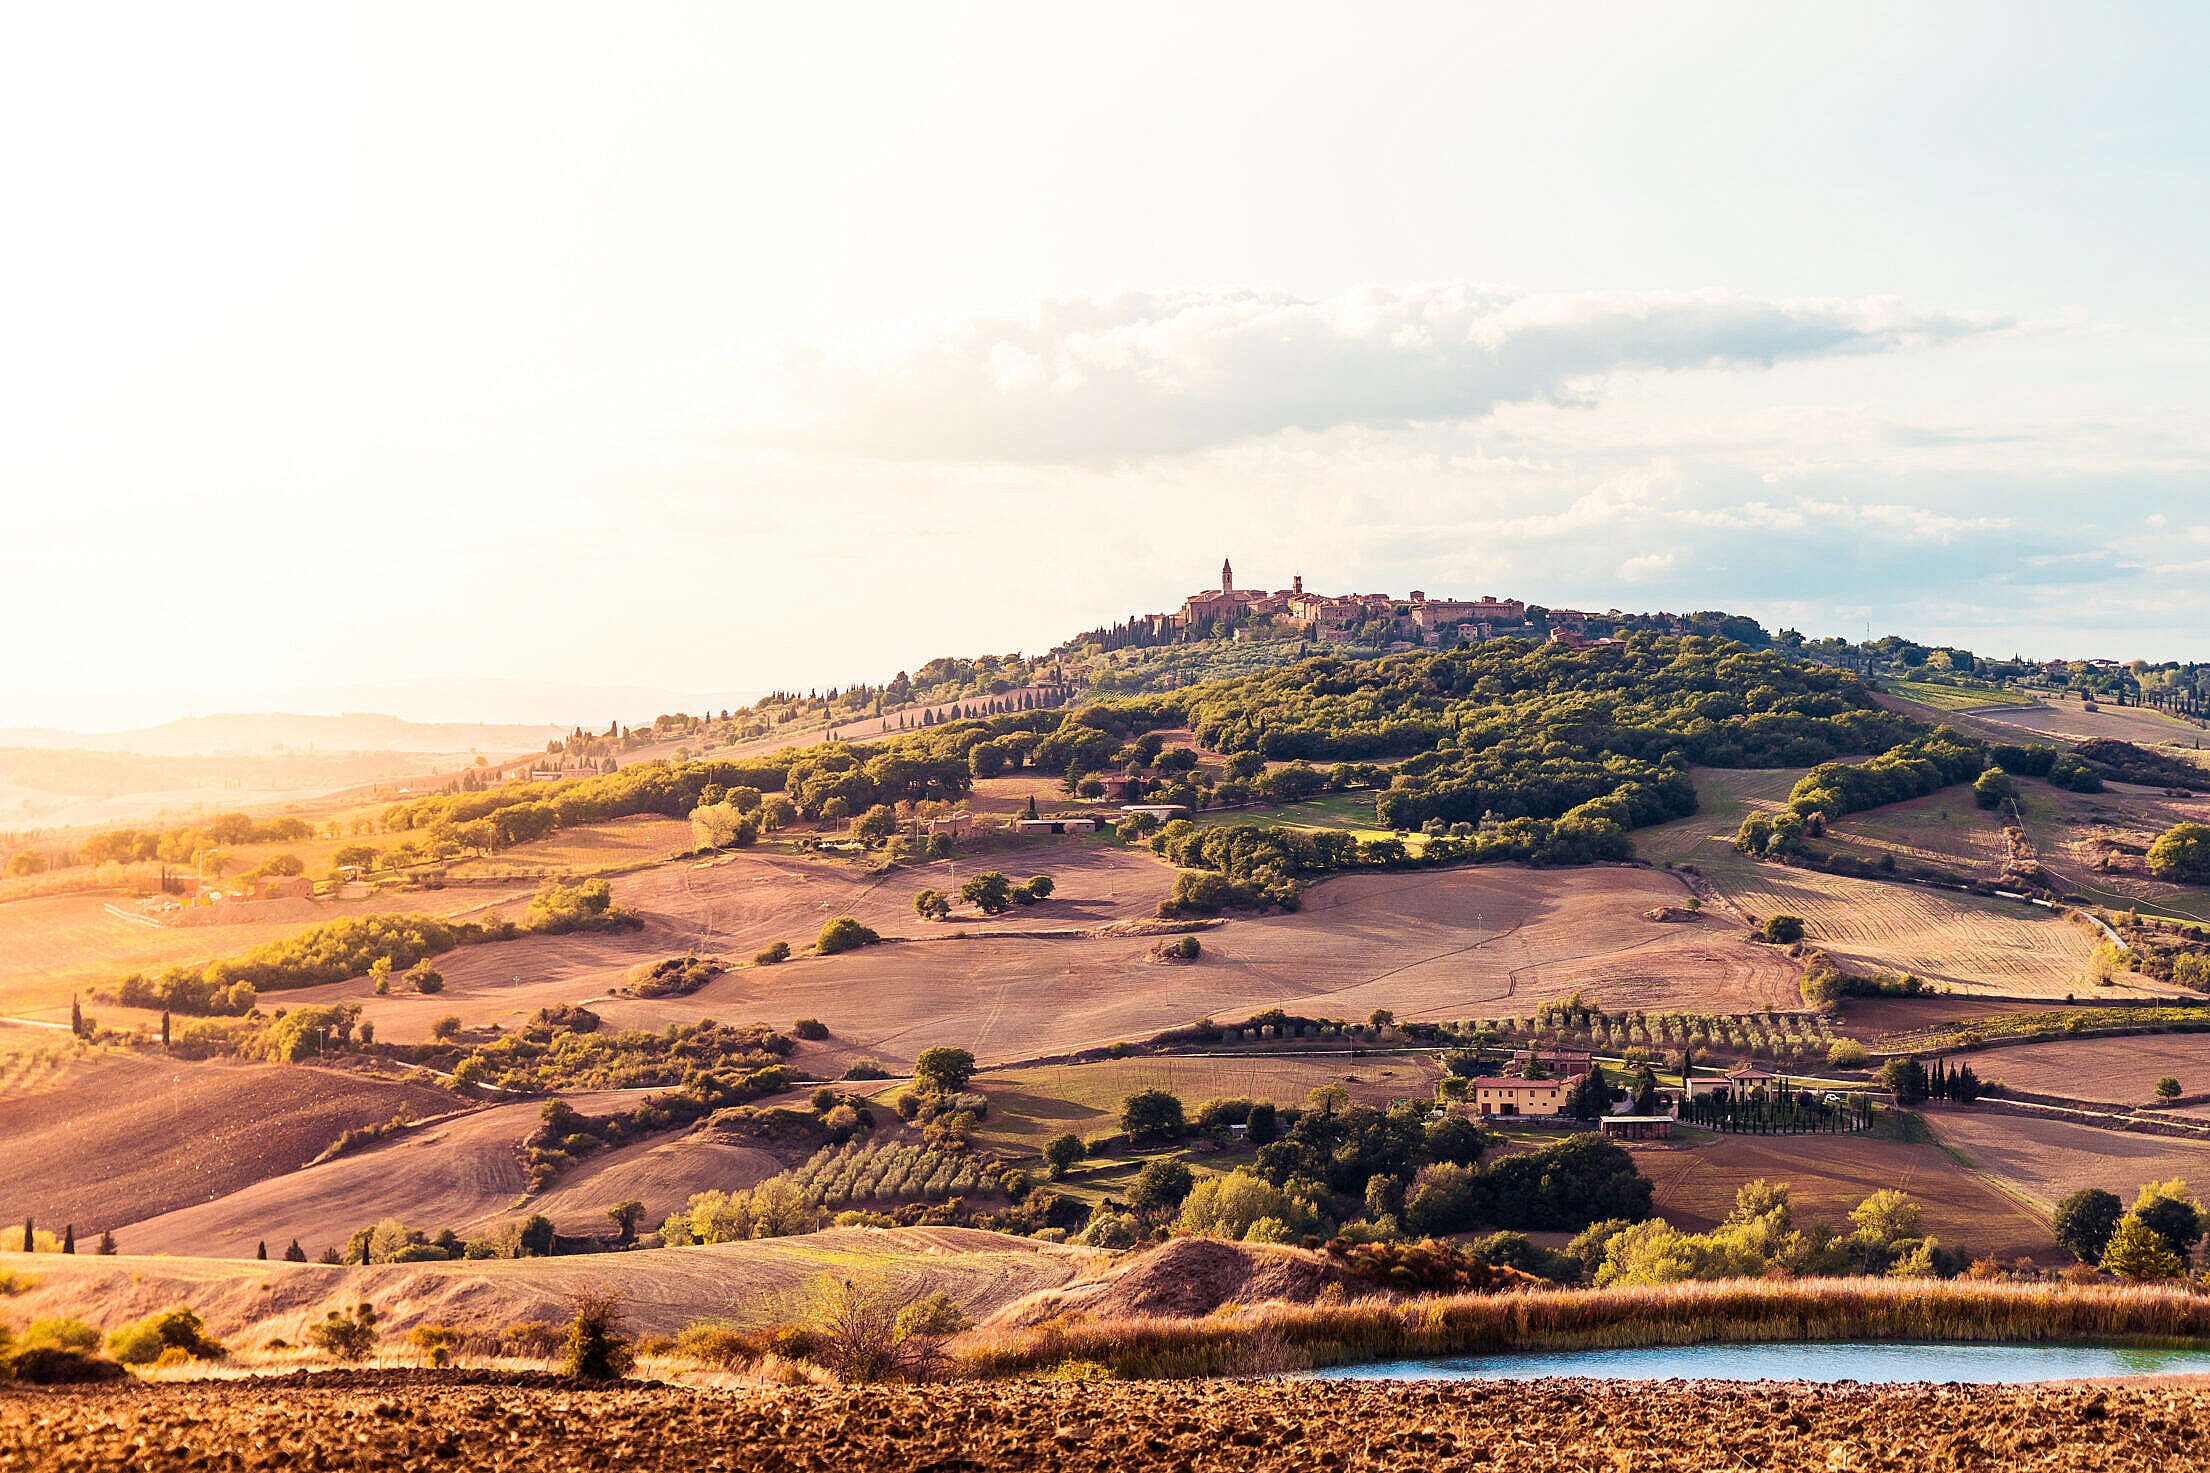 Sunset Over the Pienza Town in Tuscany (Val d'Orcia), Italy Free Stock Photo